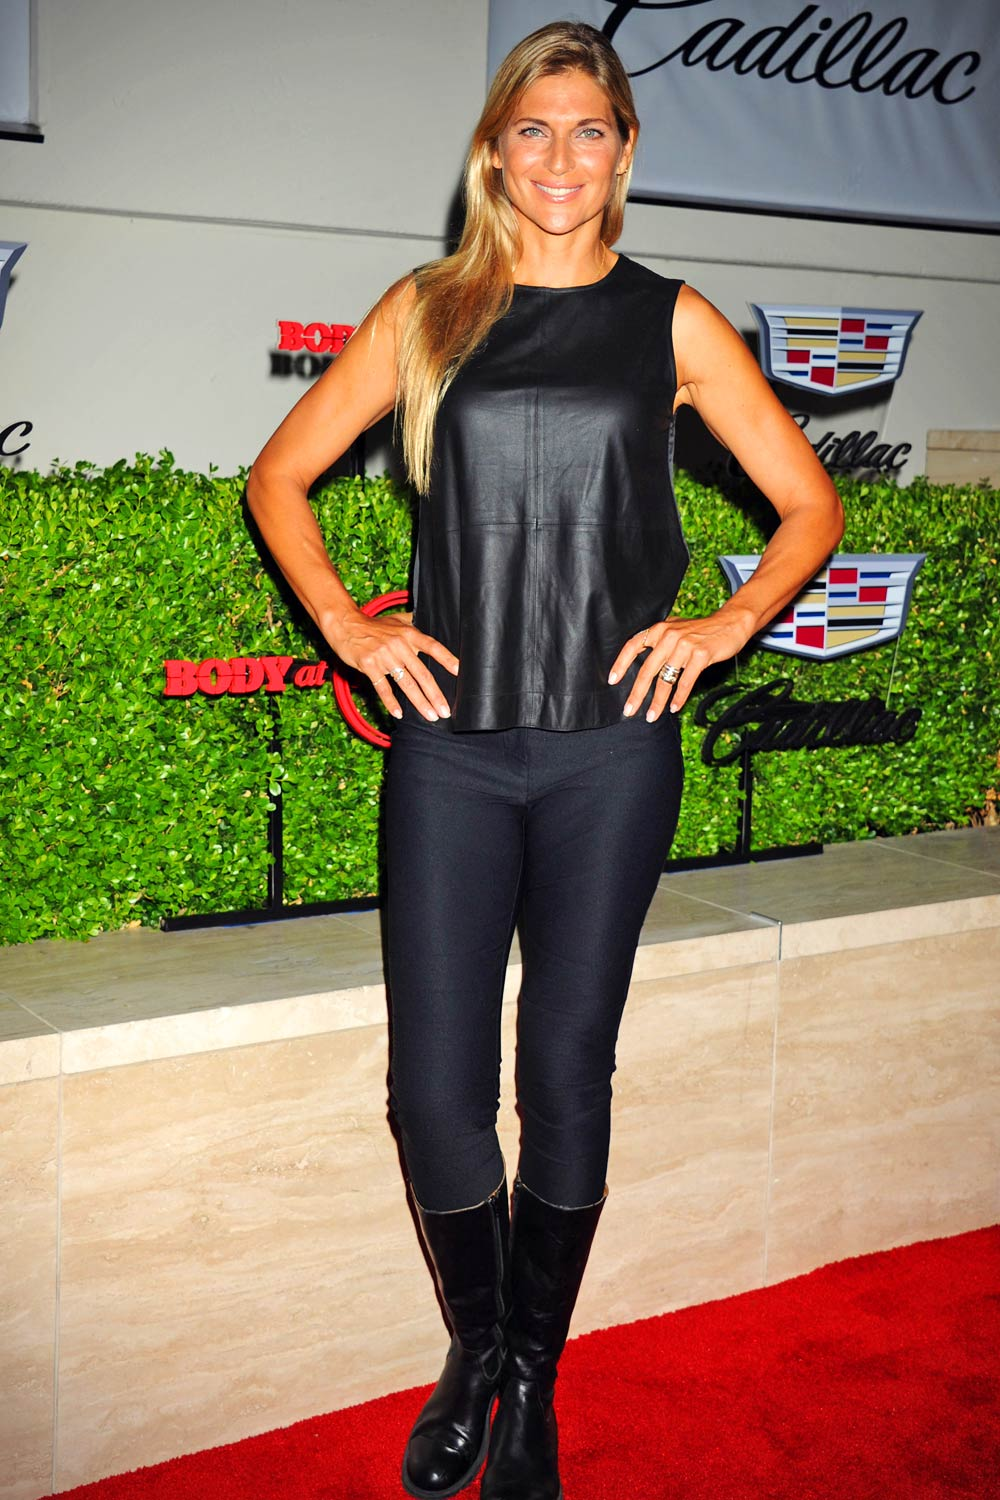 Gabrielle-Reece-attends-BODY-at-ESPYs001.jpg